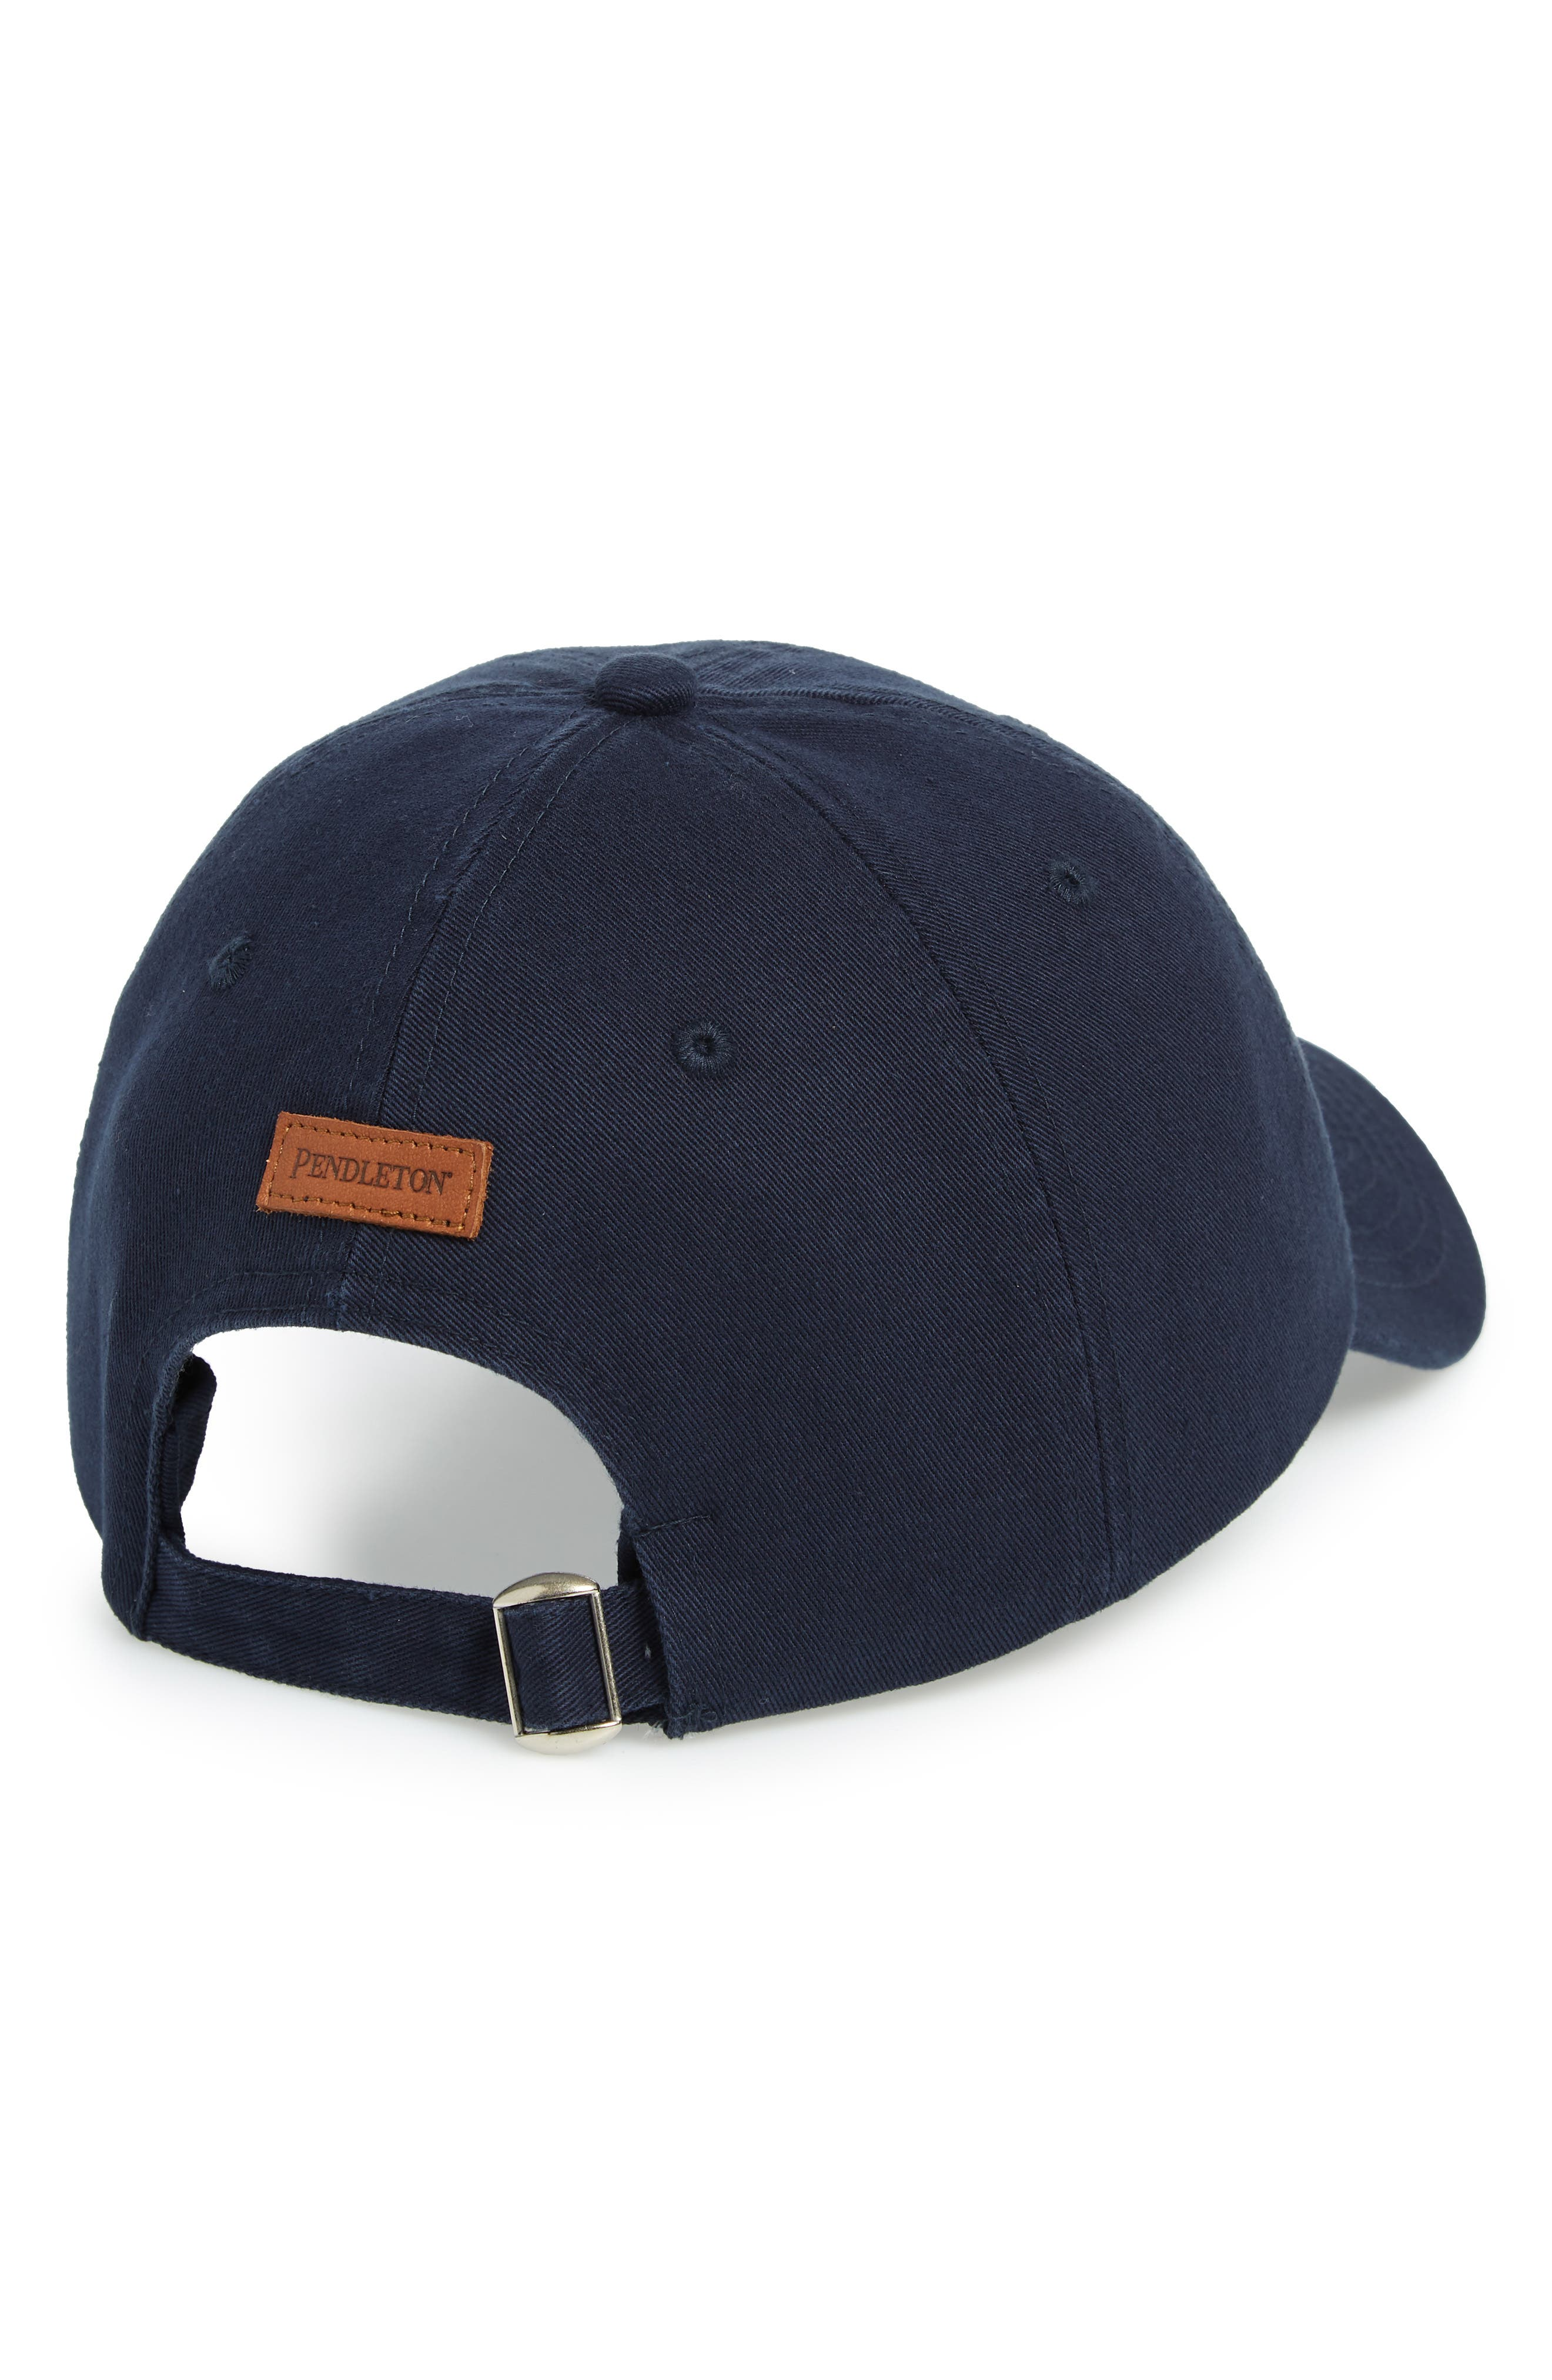 Tucson Embroidered Cap,                             Alternate thumbnail 2, color,                             NAVY